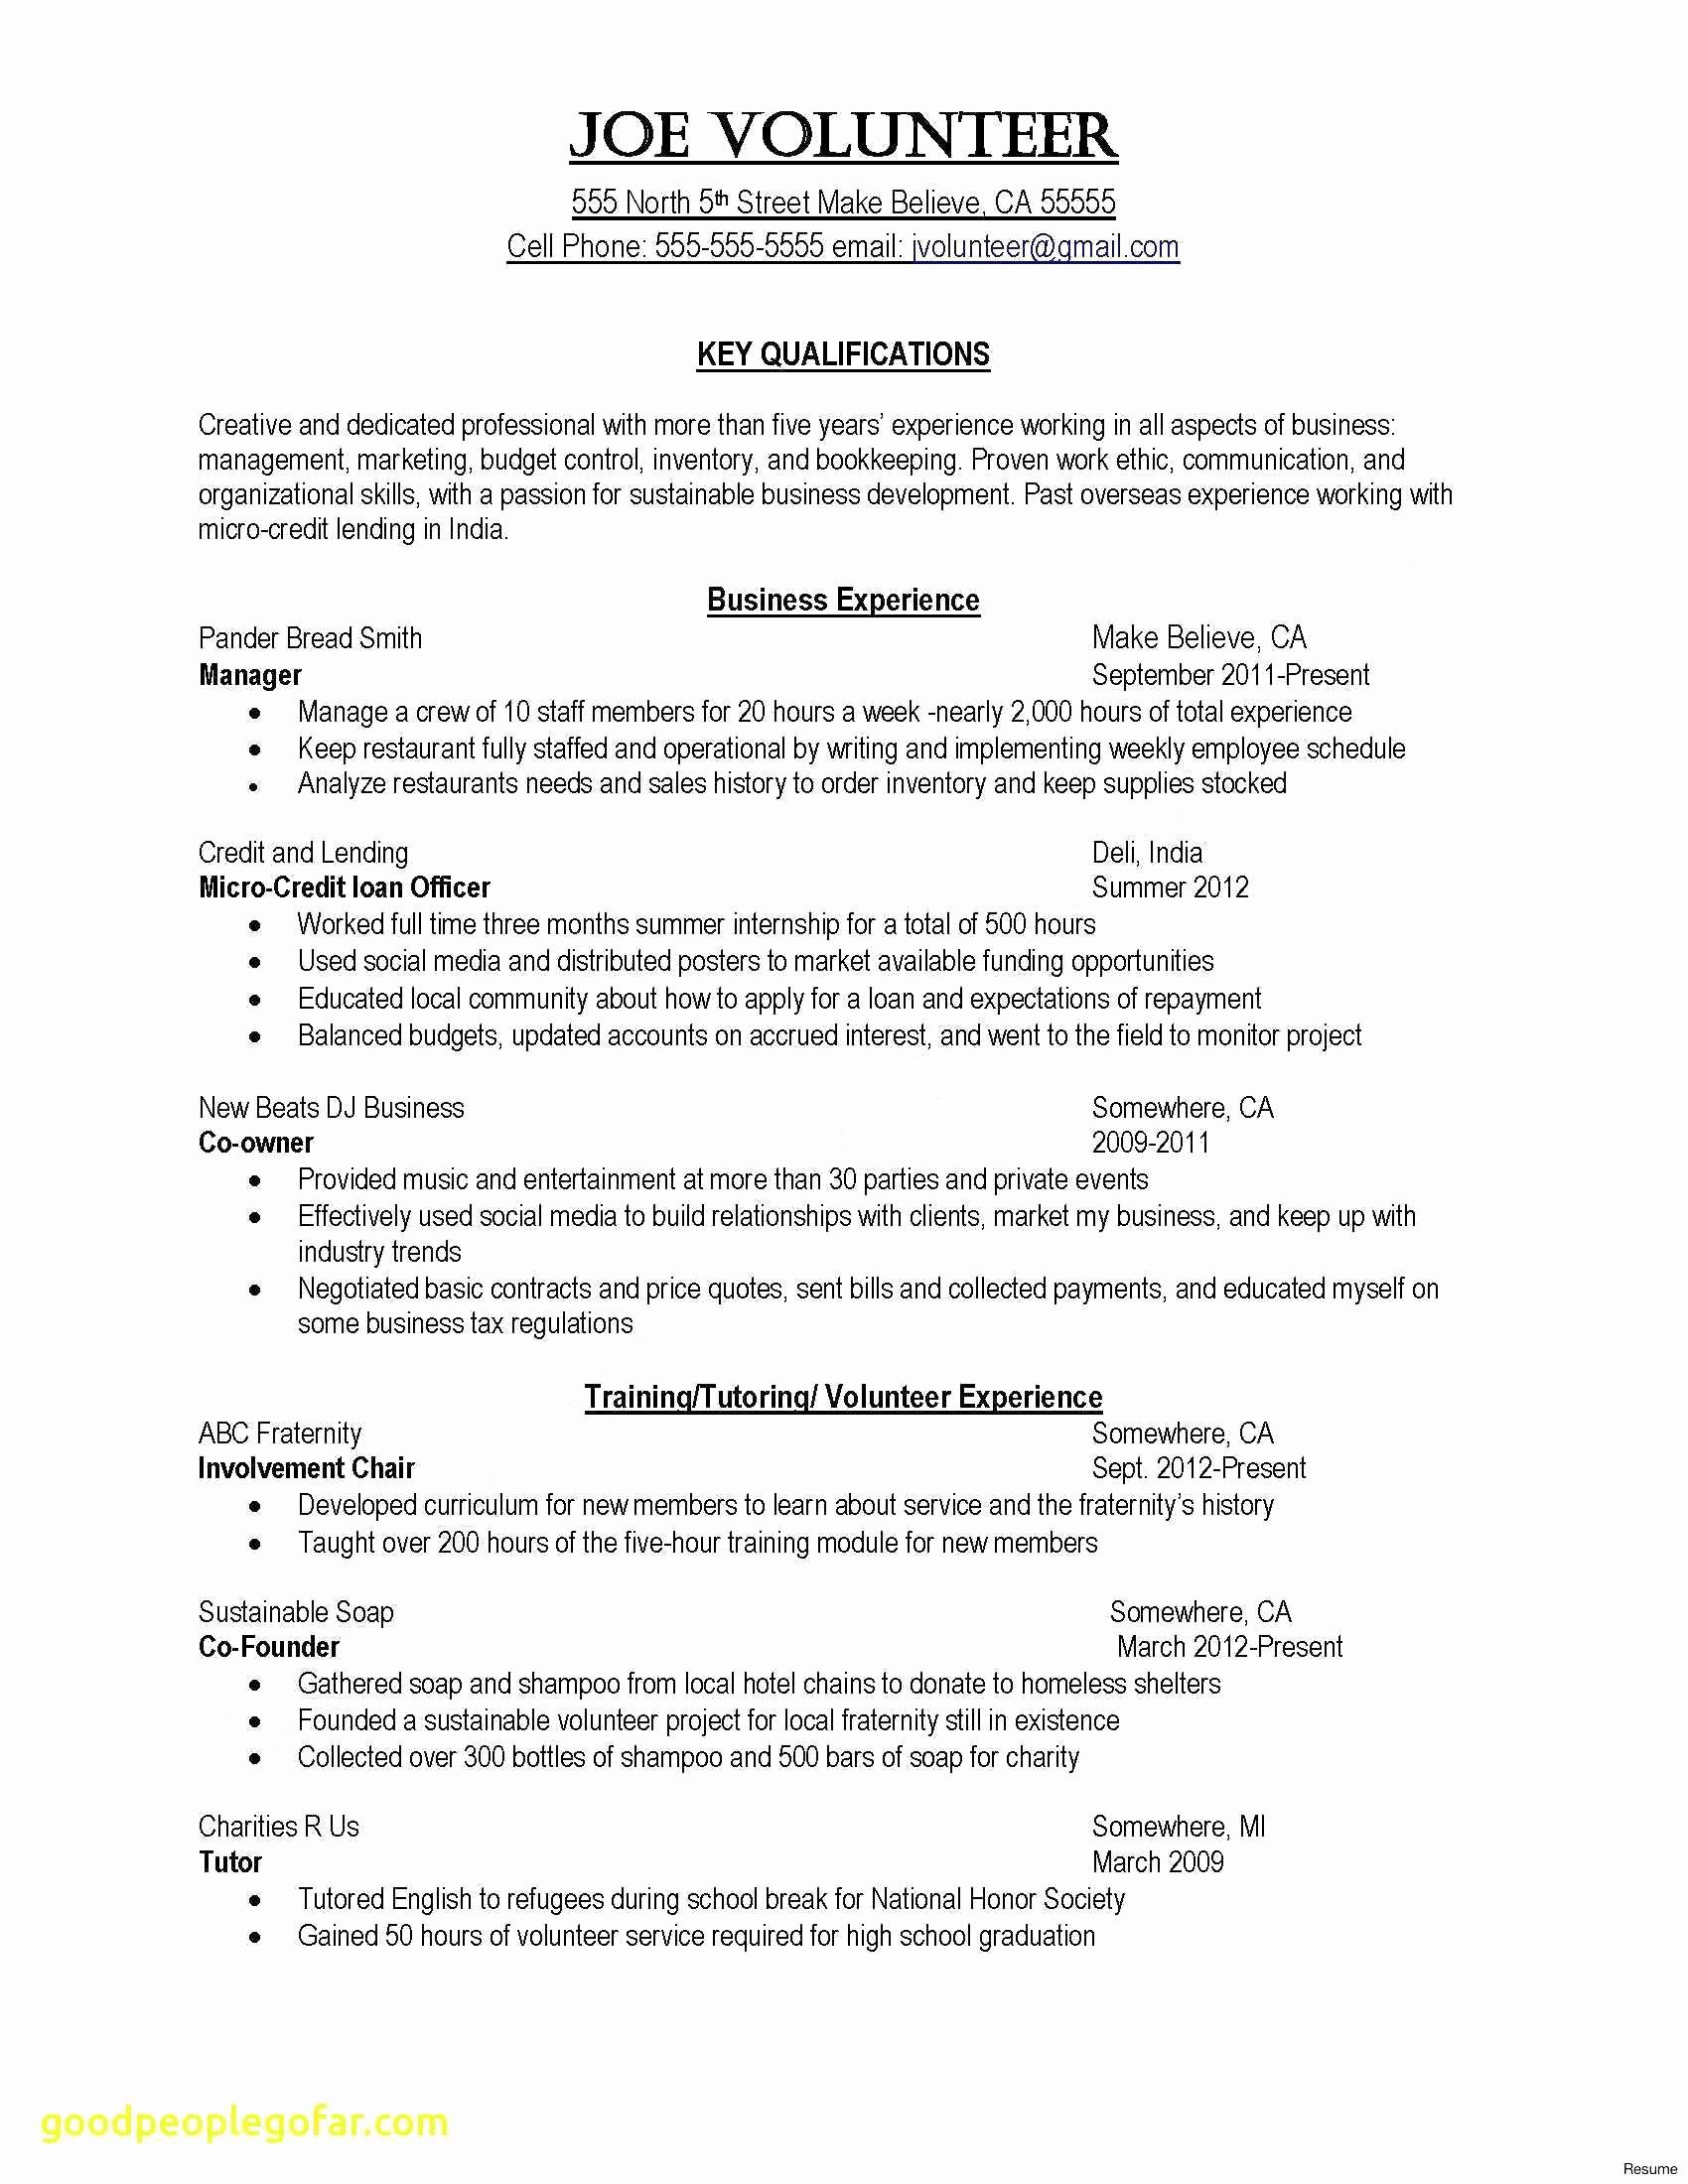 Updated Resume 2018 - 38 Best Free Samples Resumes Resume Templates Ideas 2018